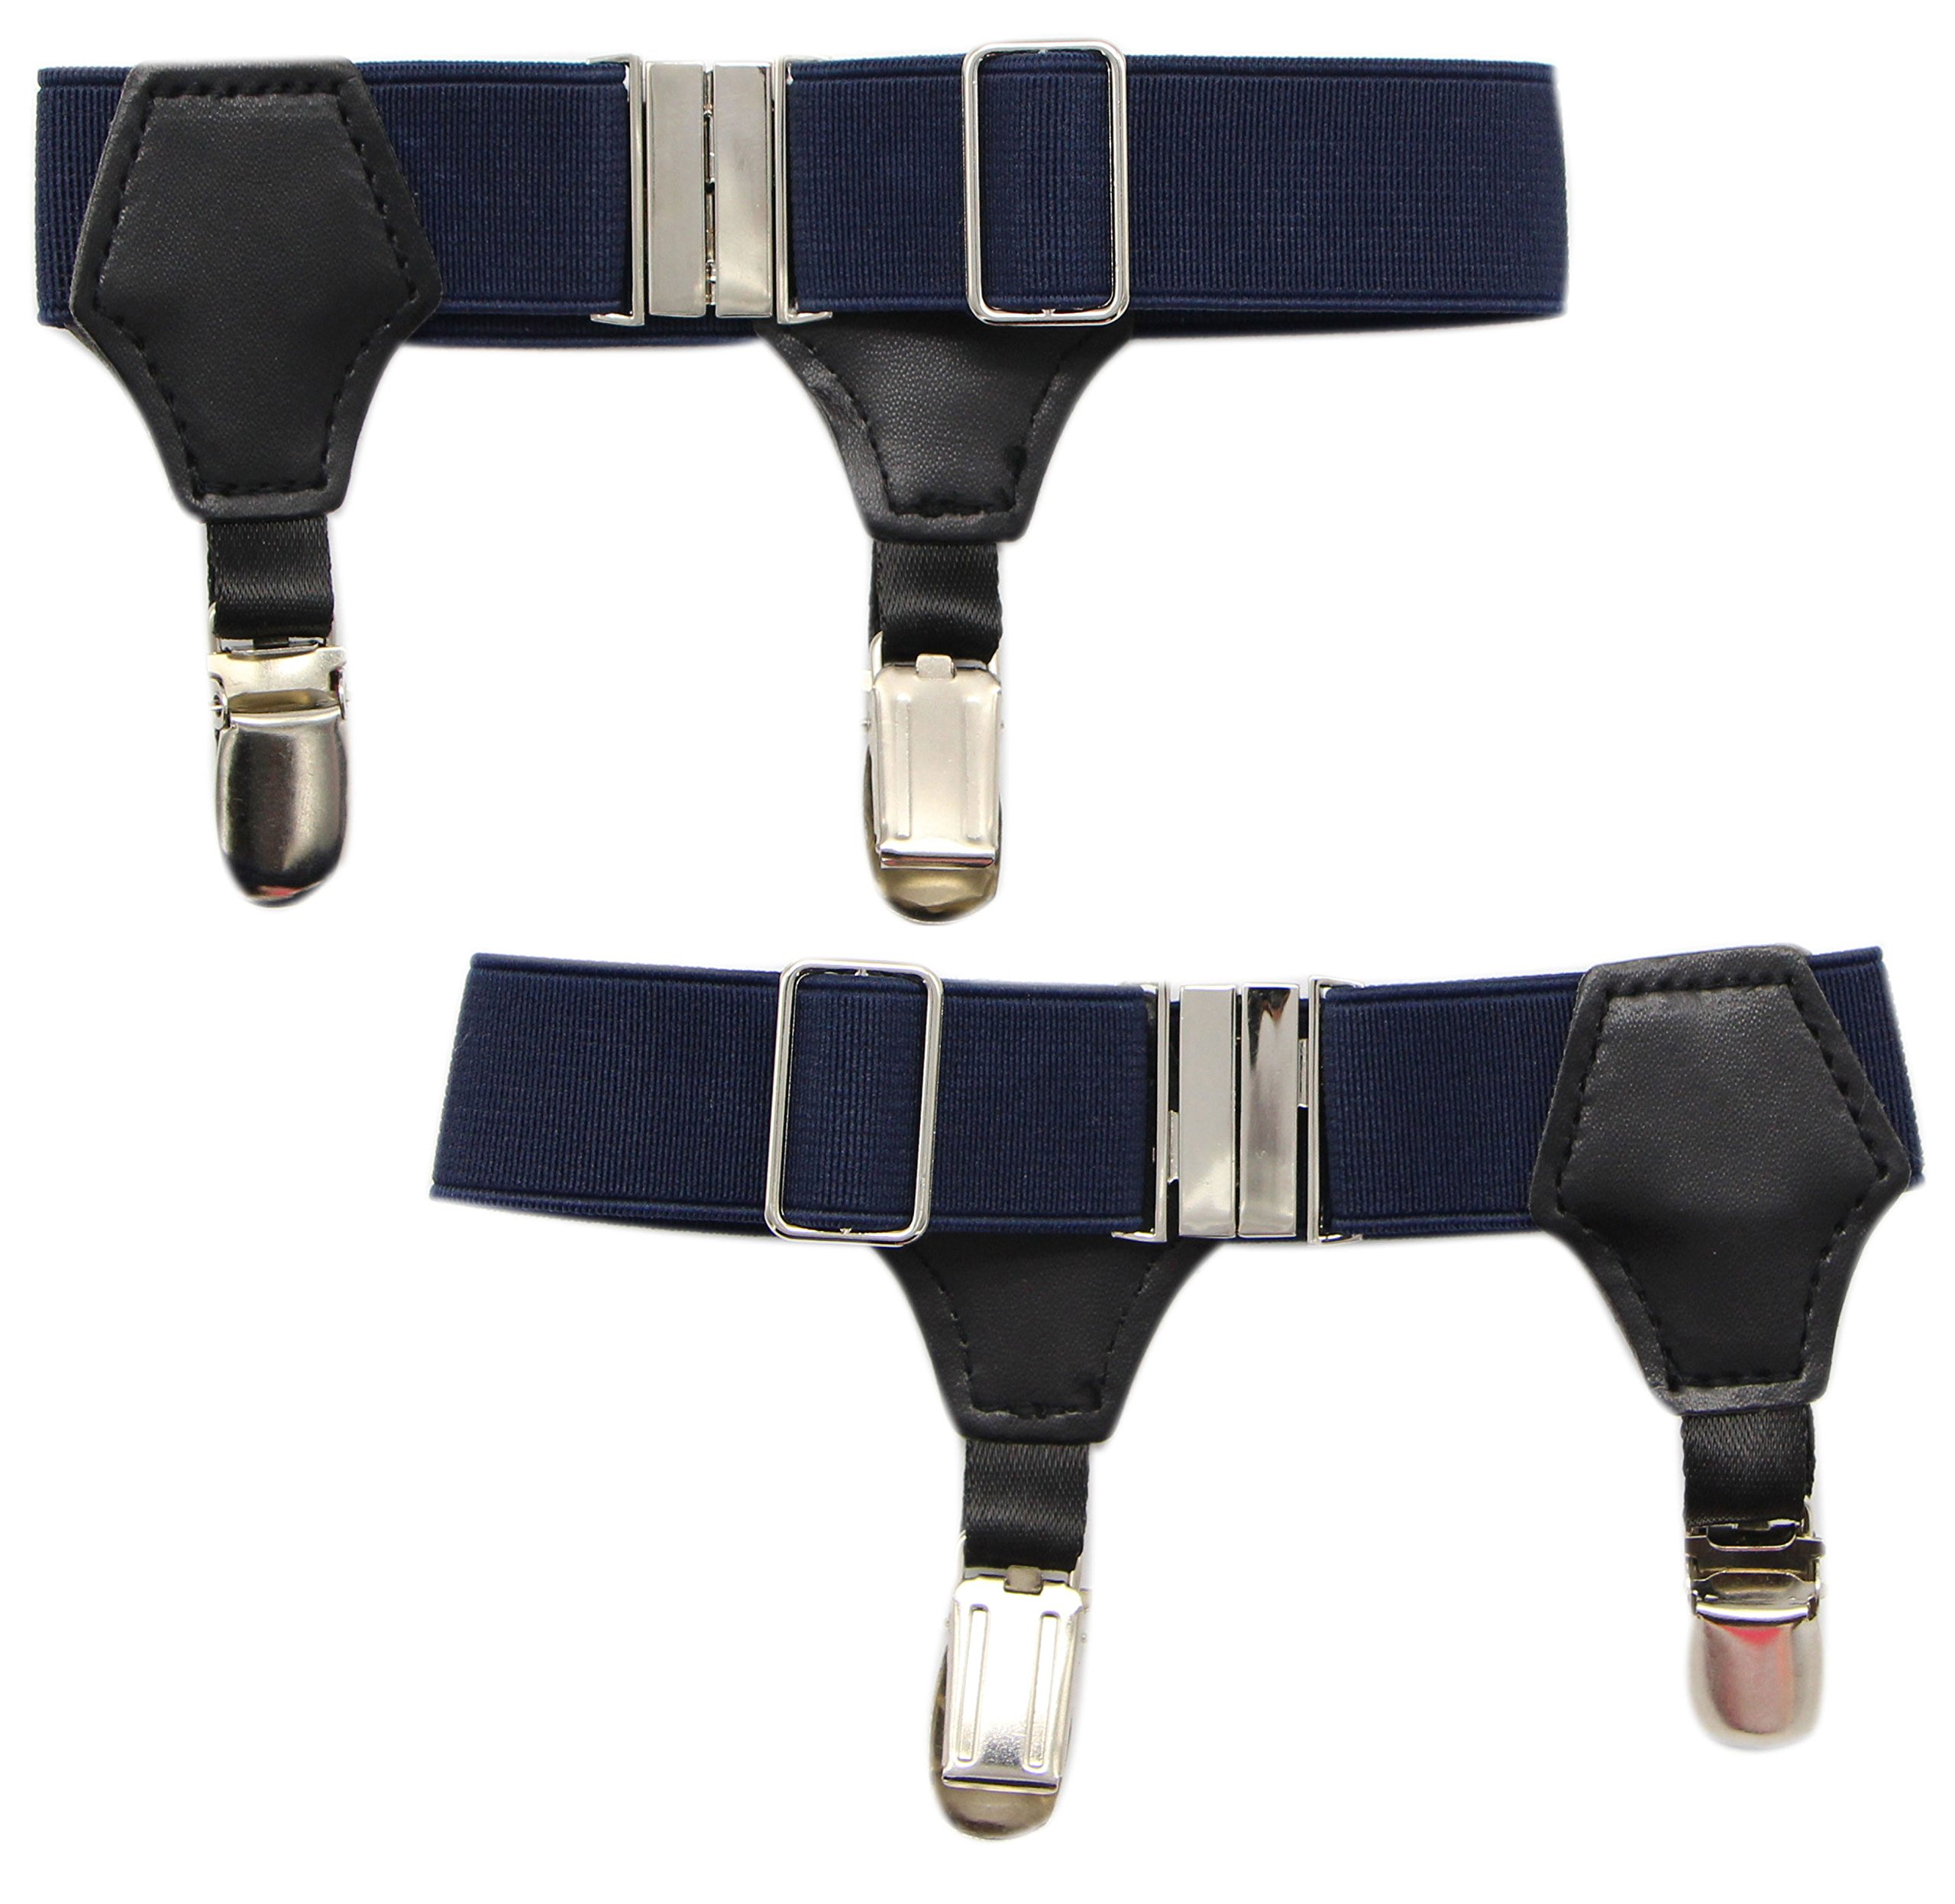 JAIFEI High-End Sock Garters- Premium 1-Pair Double Sturdy Clip Sock Suspenders For Cotton & Silk Socks (Navy)